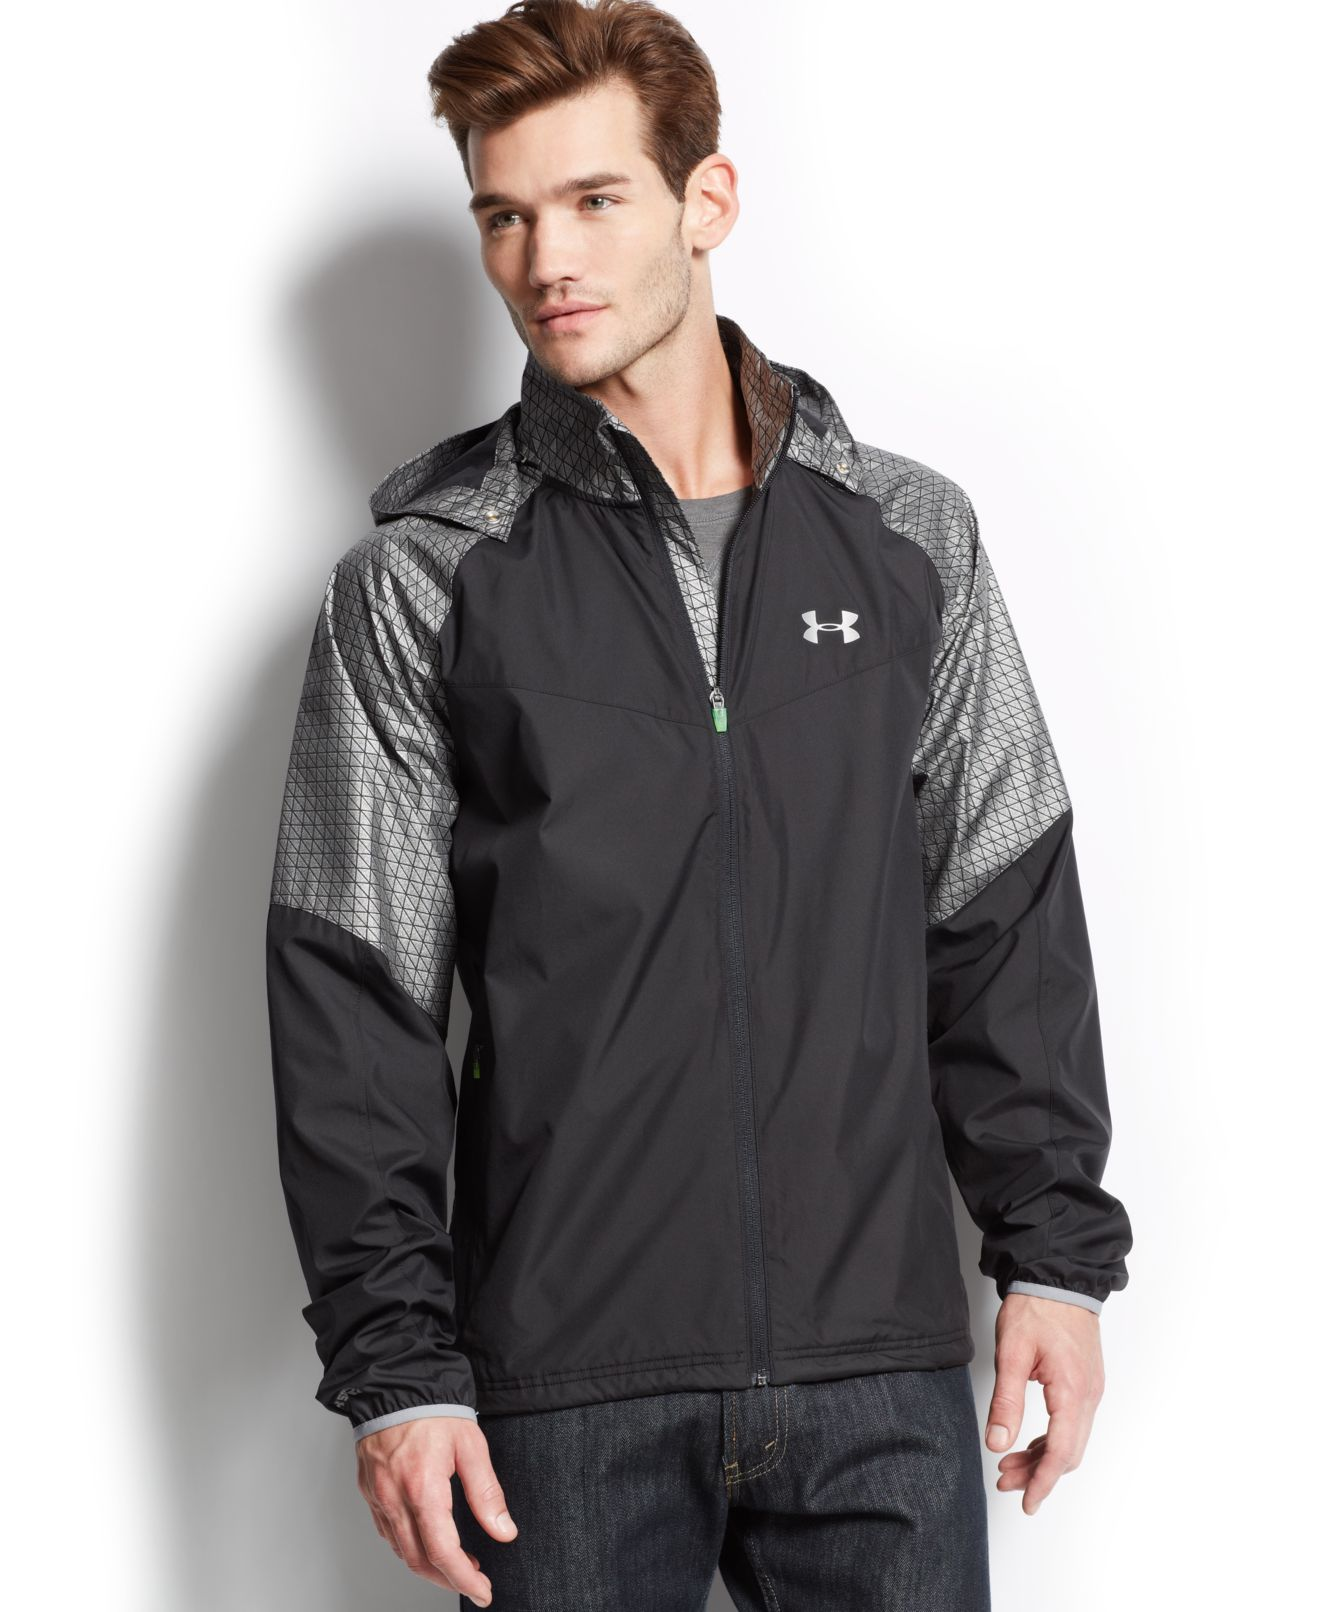 Under Armour Storm Anchor Jacket Armour Storm Anchor Jacket